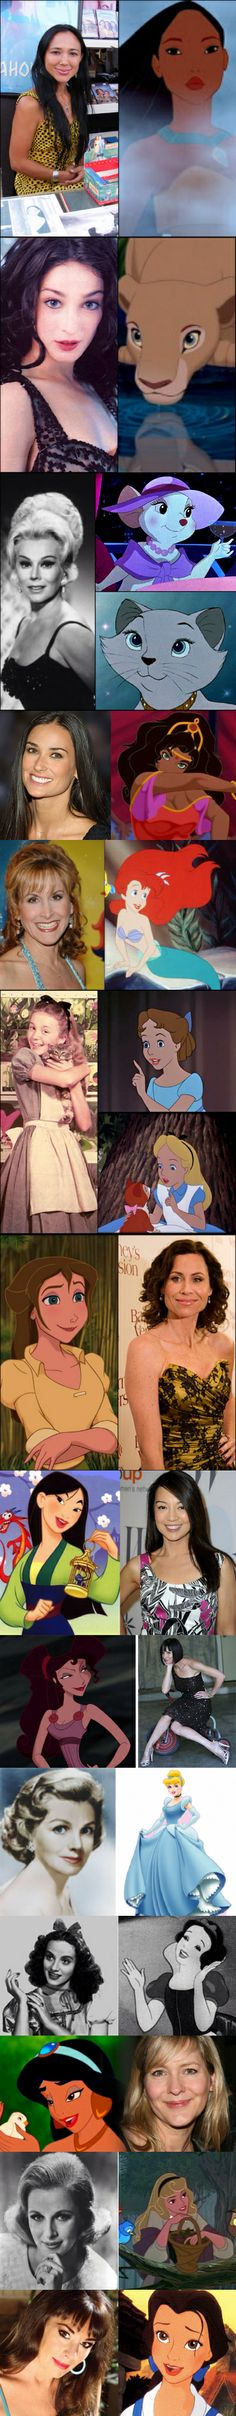 Disney characters and the people that voiced them